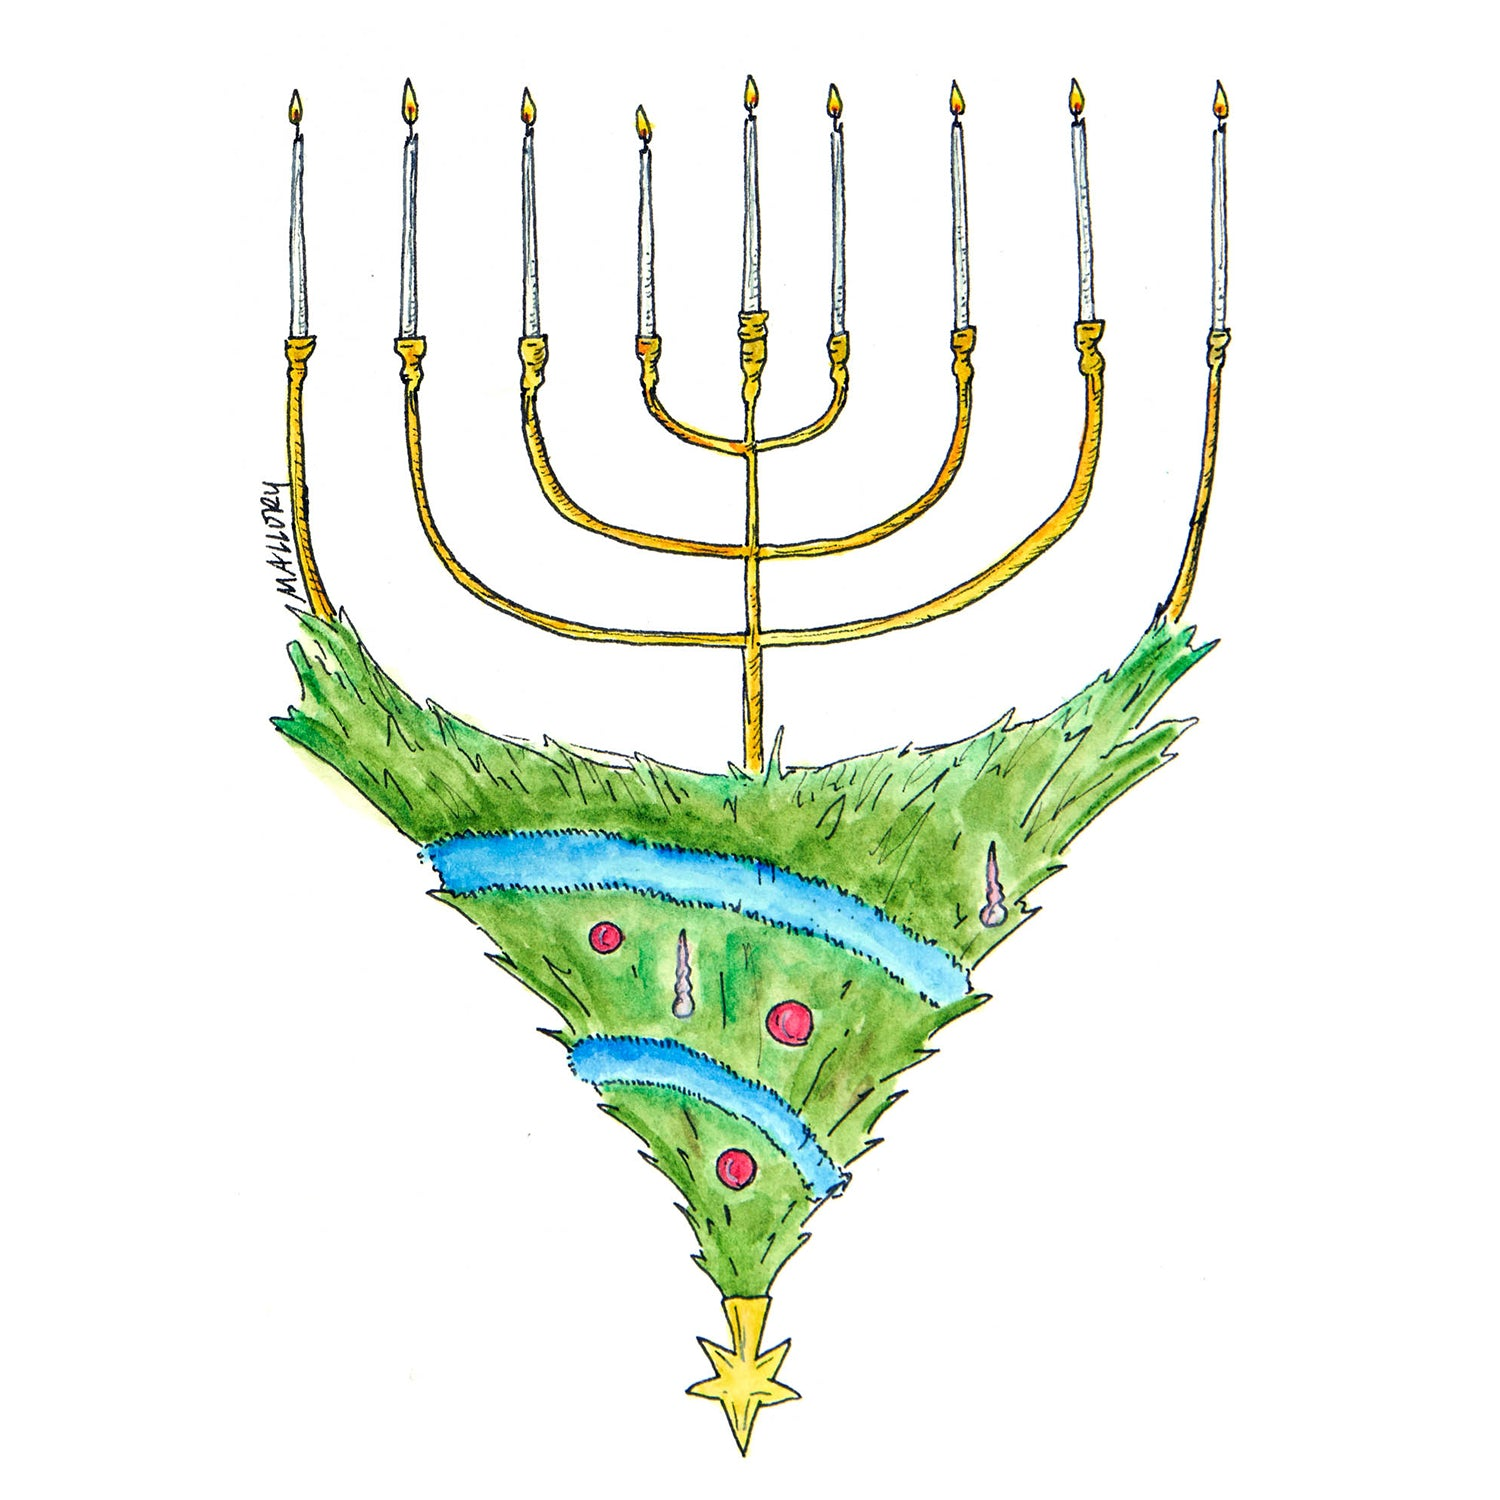 Blended Holiday Hanukkah Card (Menorah)